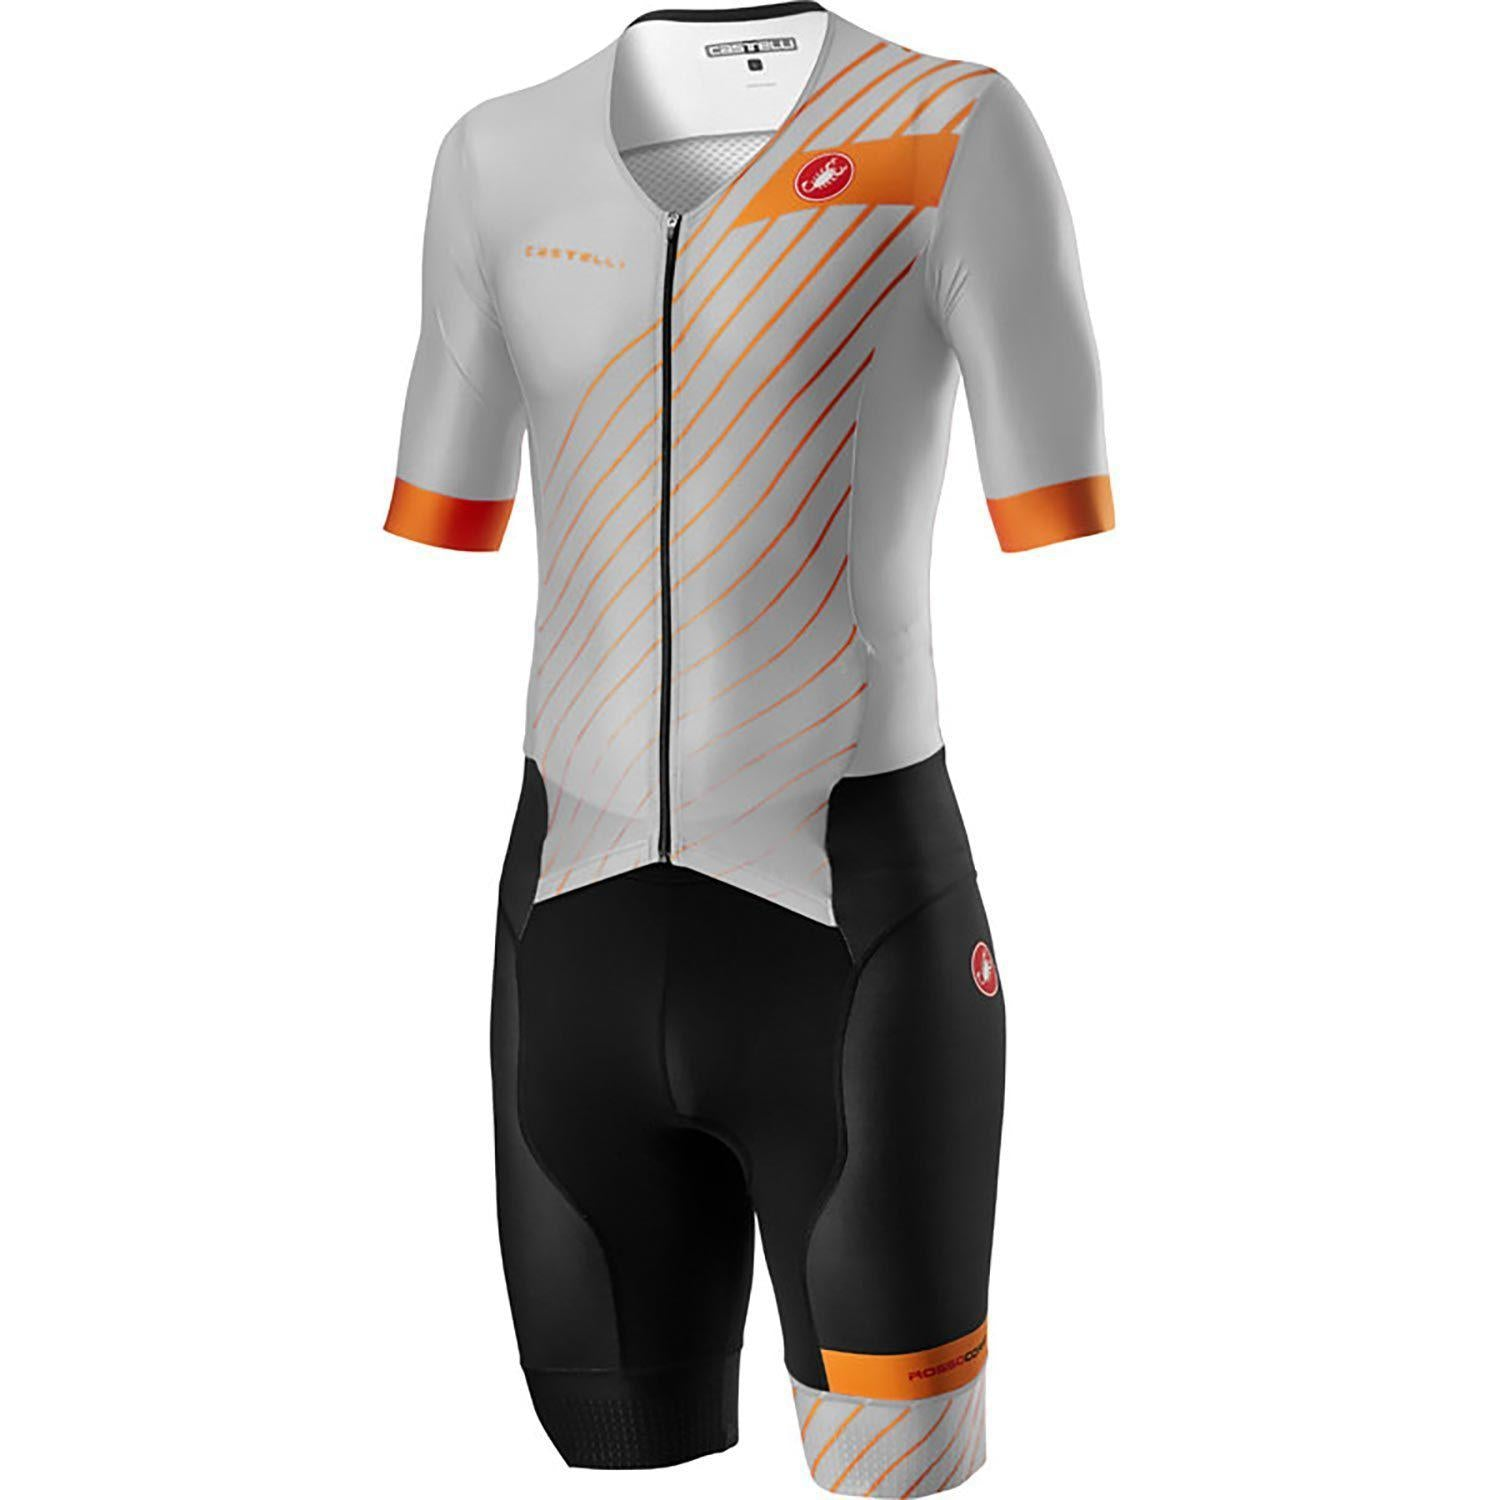 Castelli-Castelli Free Sanremo 2 Suit Short Sleeve-Silver Gray/Brilliant Orange-S-CS200928702-saddleback-elite-performance-cycling